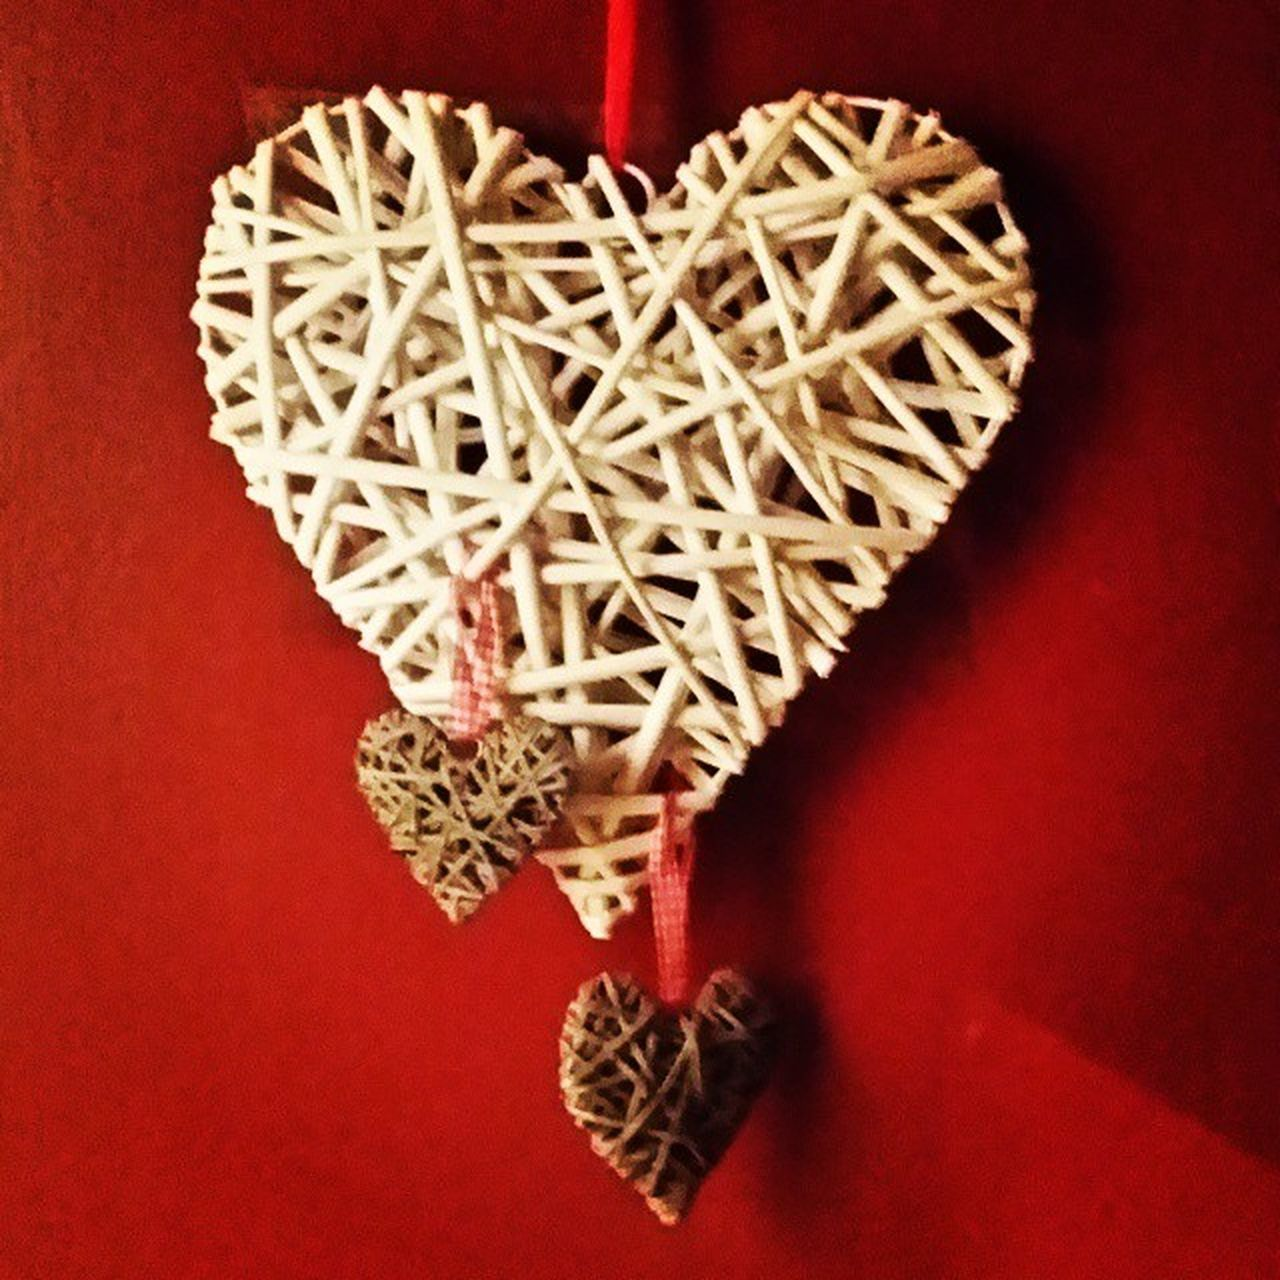 red, heart shape, love, christmas, indoors, still life, close-up, no people, red background, table, pattern, hanging, christmas decoration